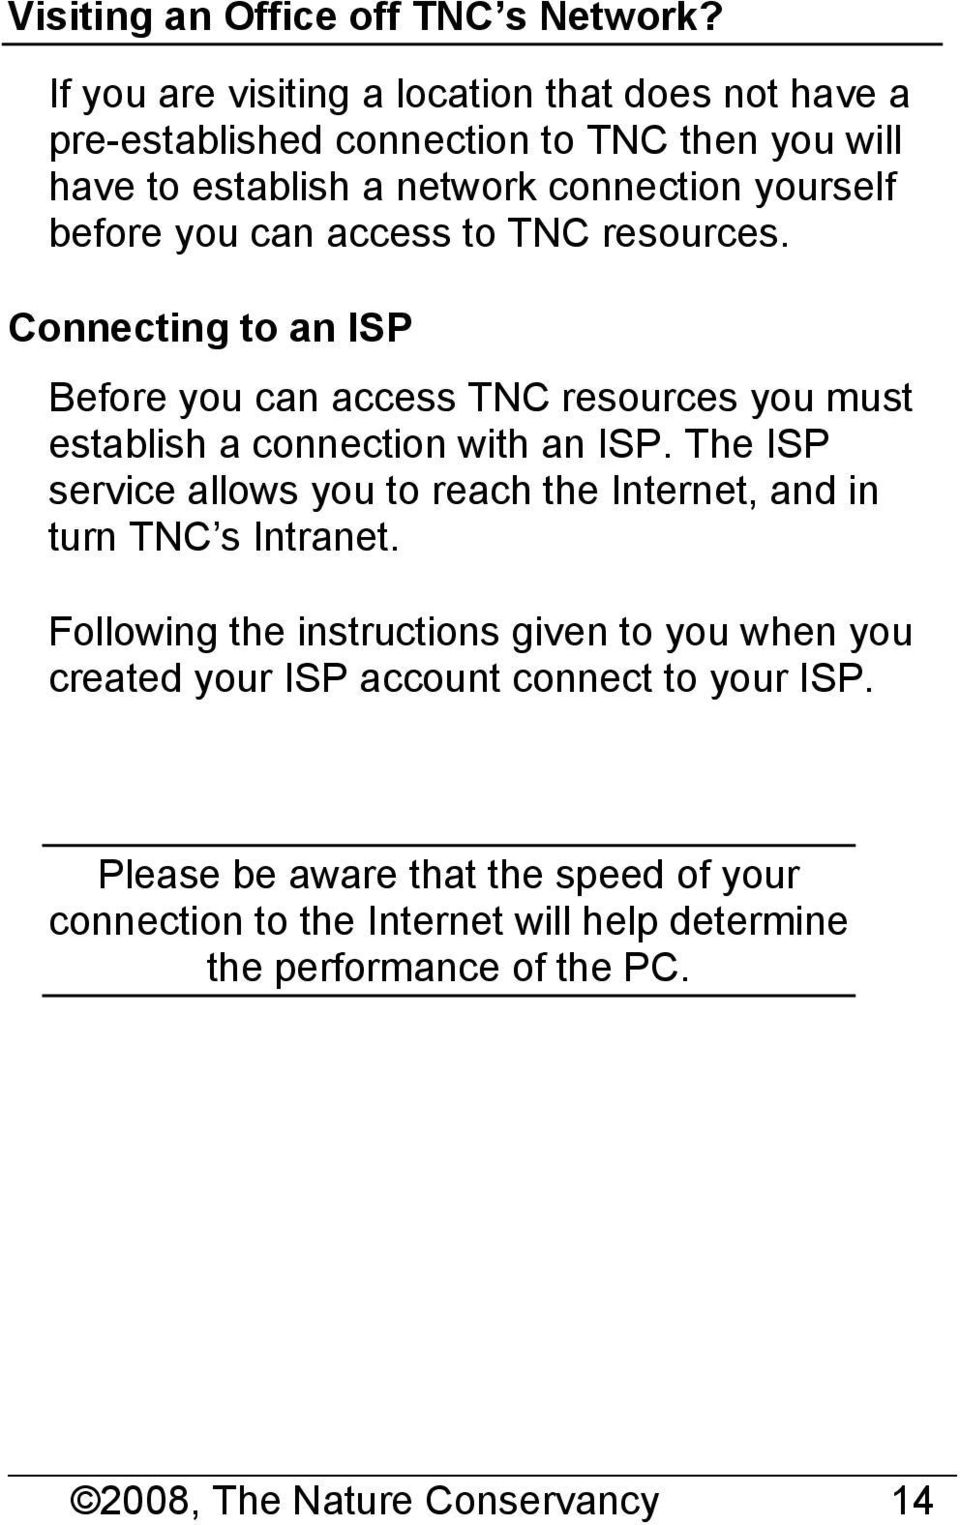 can access to TNC resources. Connecting to an ISP Before you can access TNC resources you must establish a connection with an ISP.